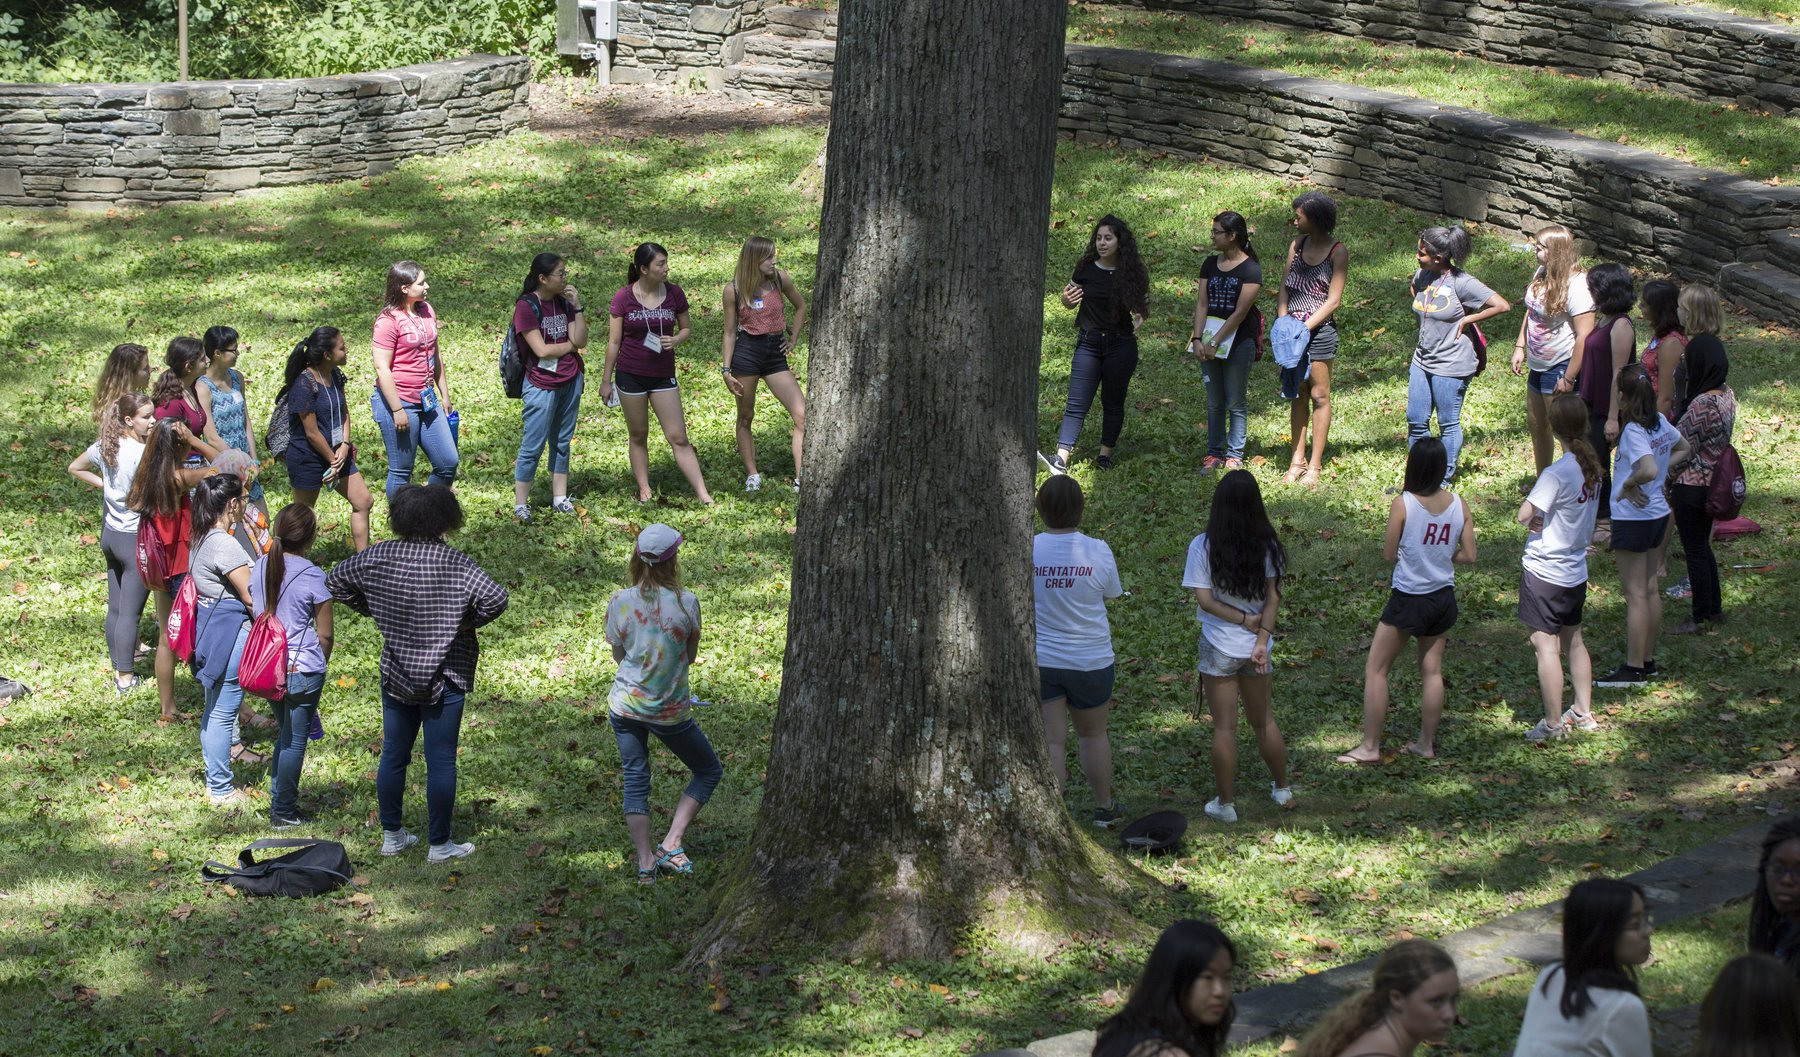 Orientation group in the Amphitheatre